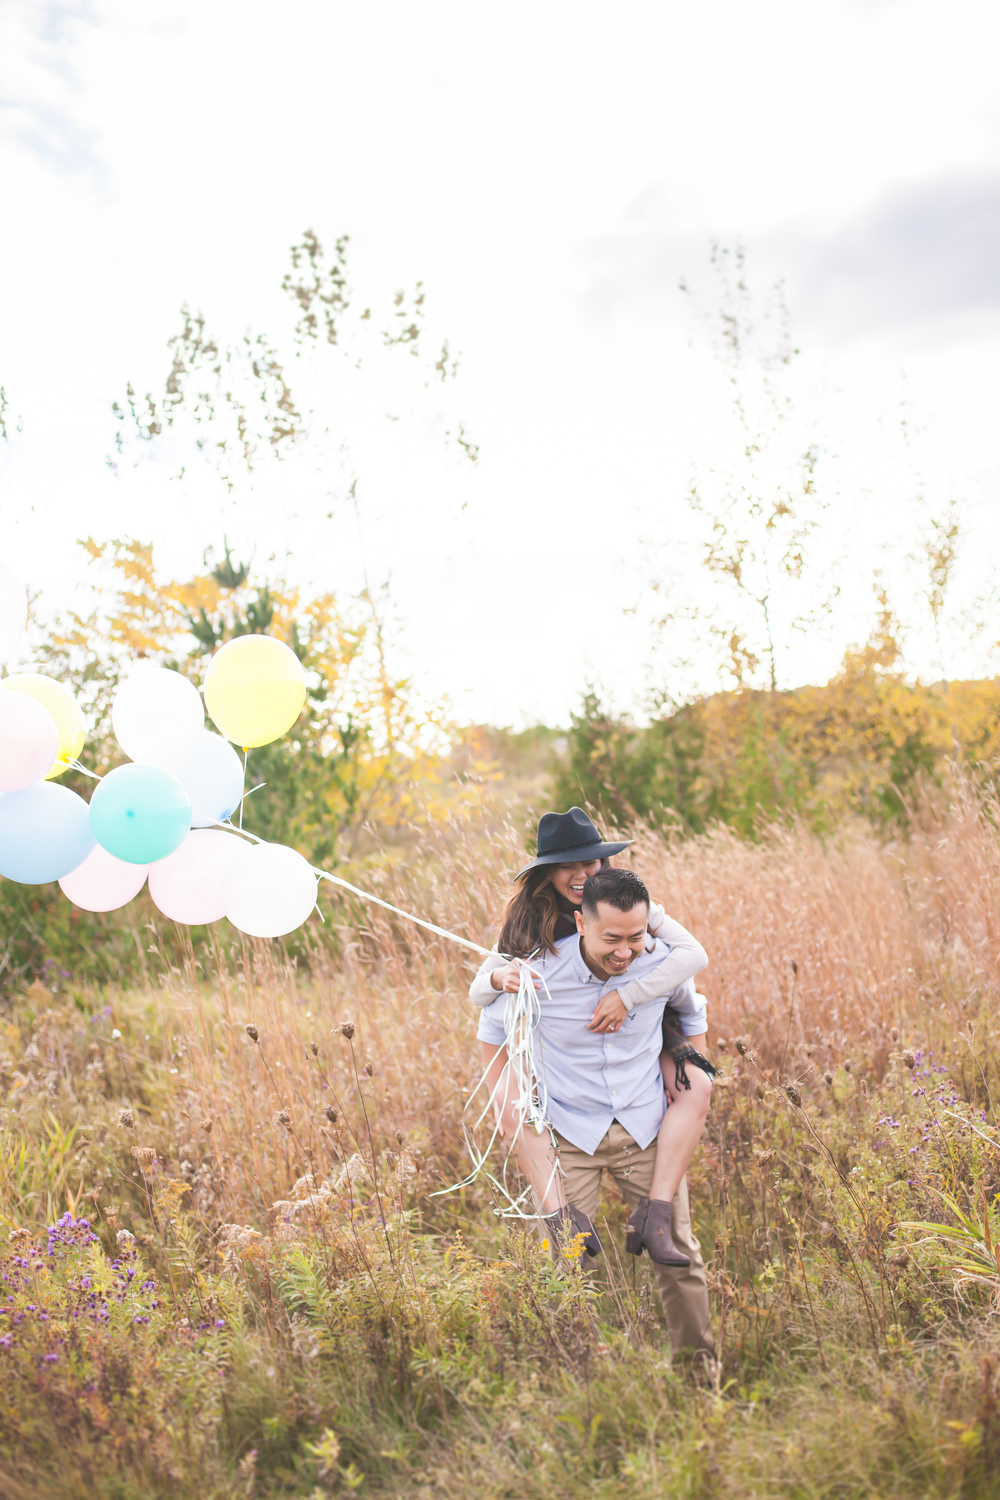 Outdoor bohemian style engagement session with balloons